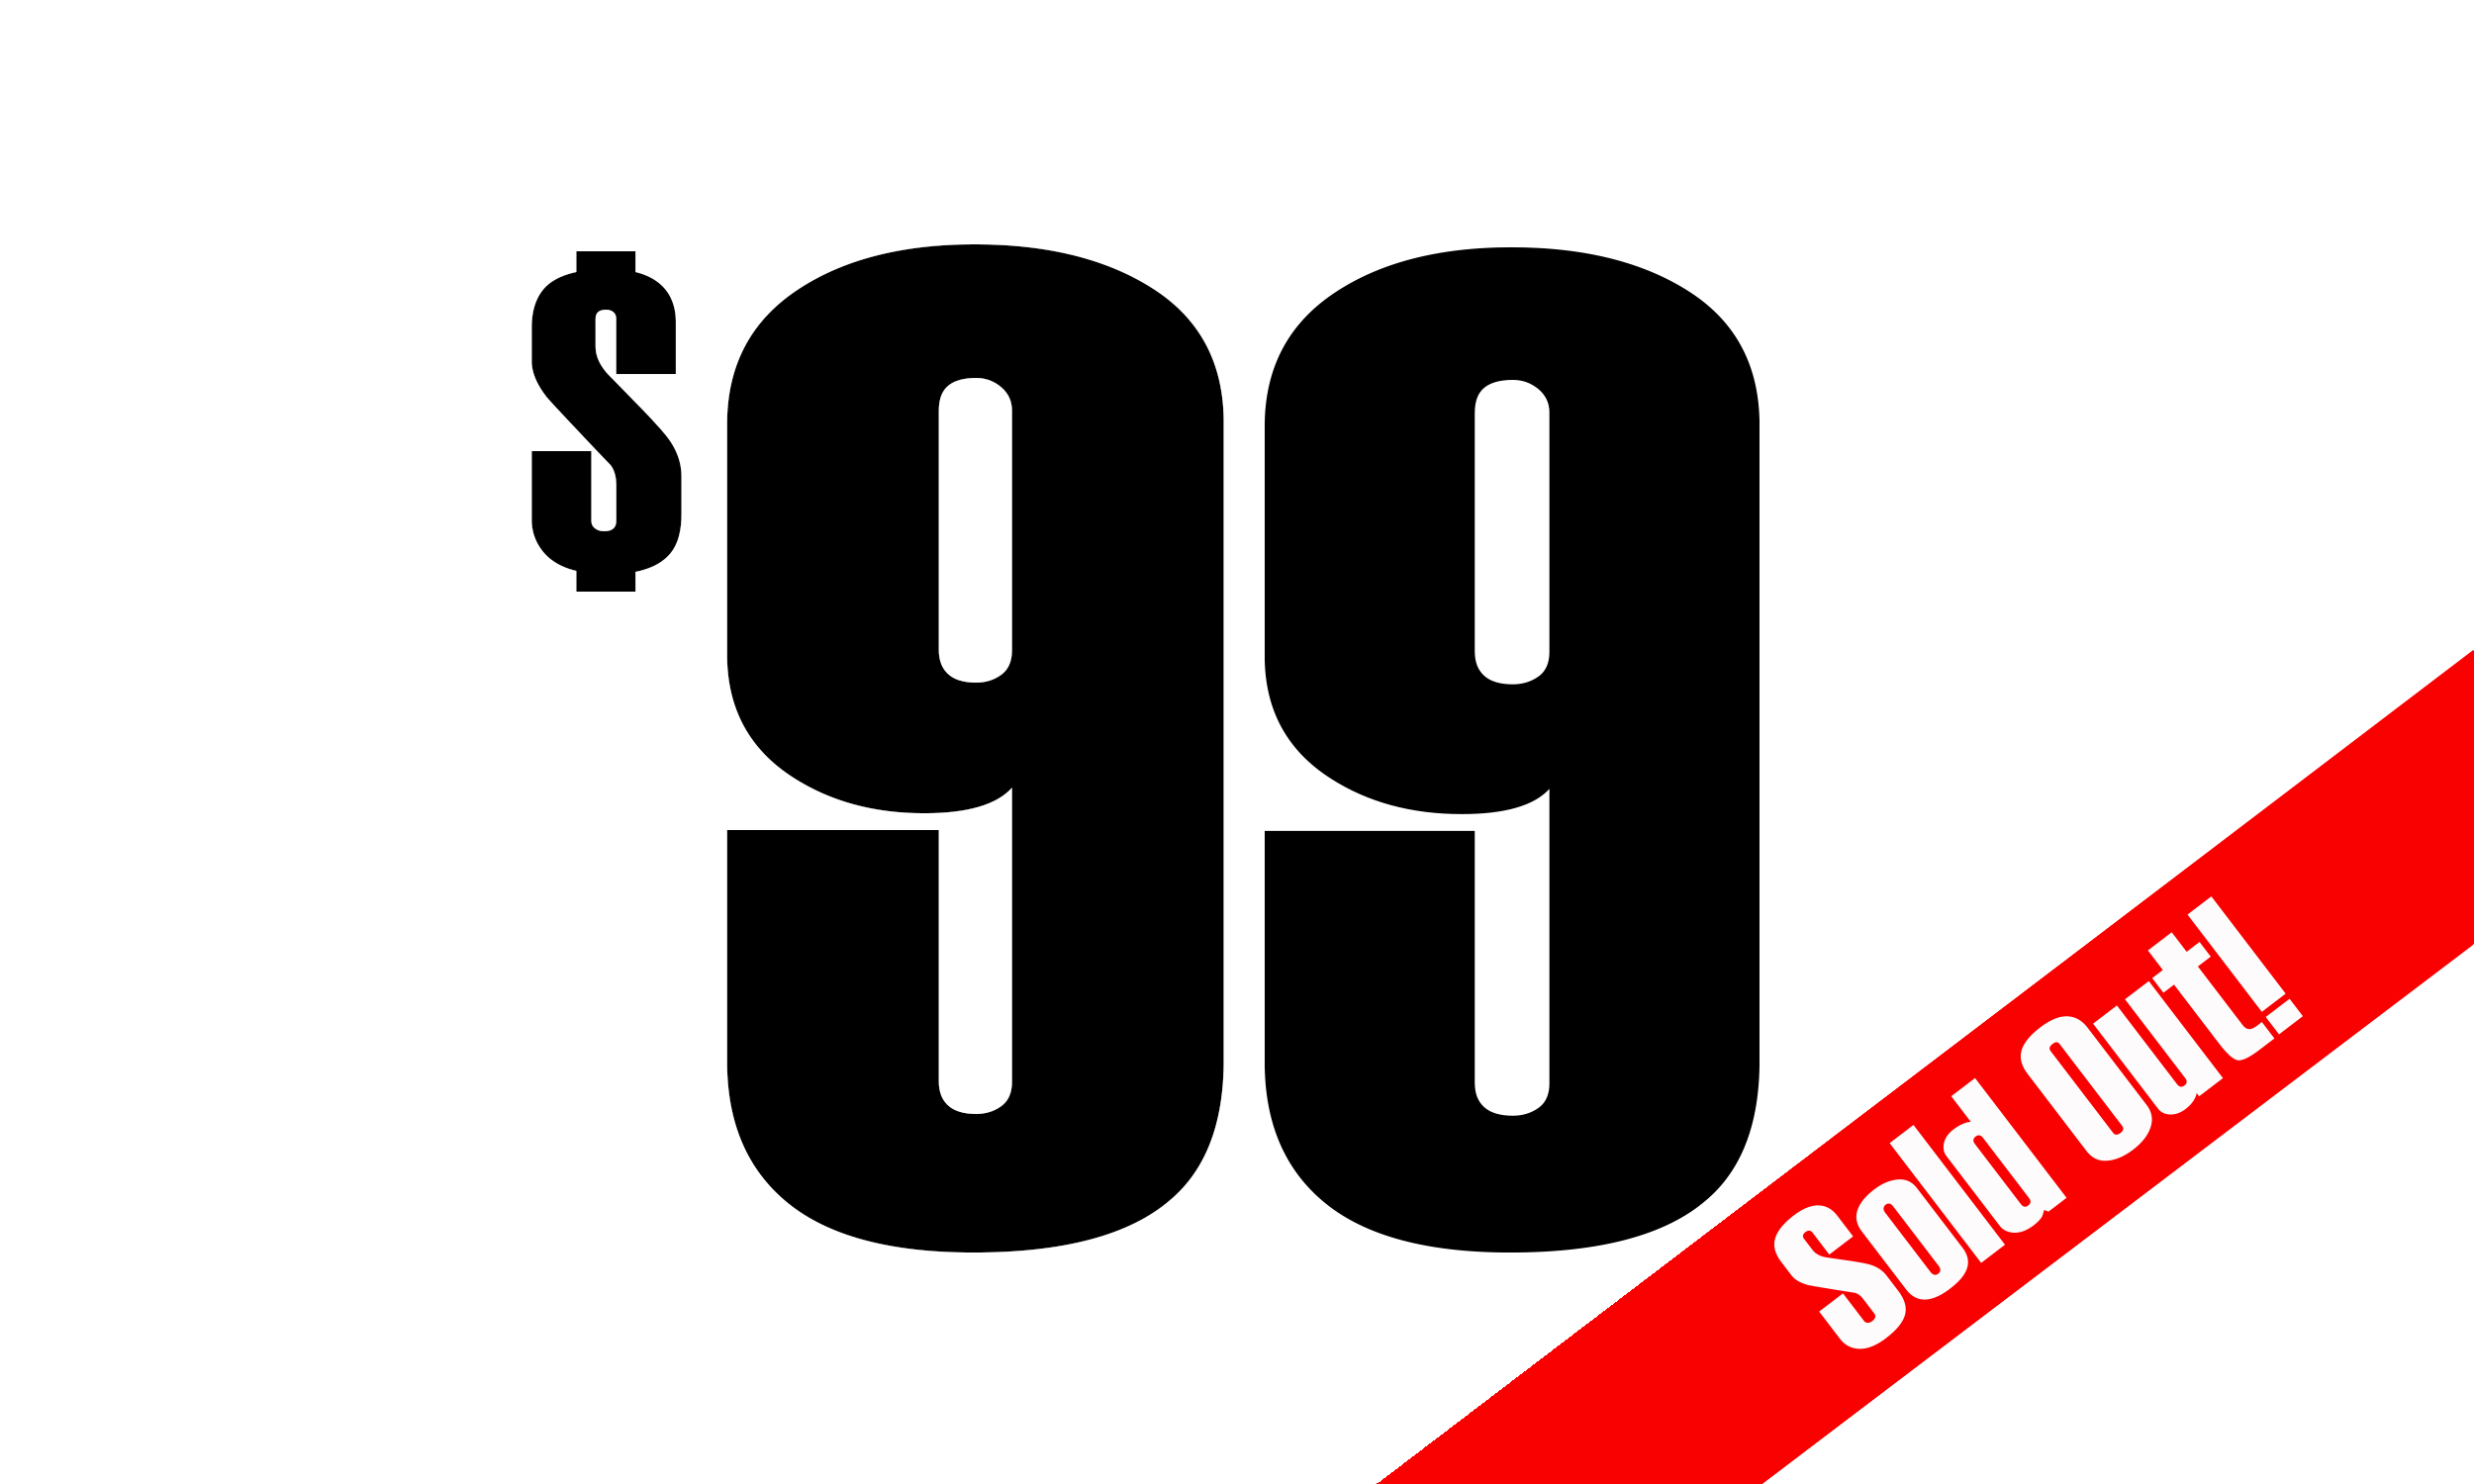 99_Sold_Out_Red_White.png